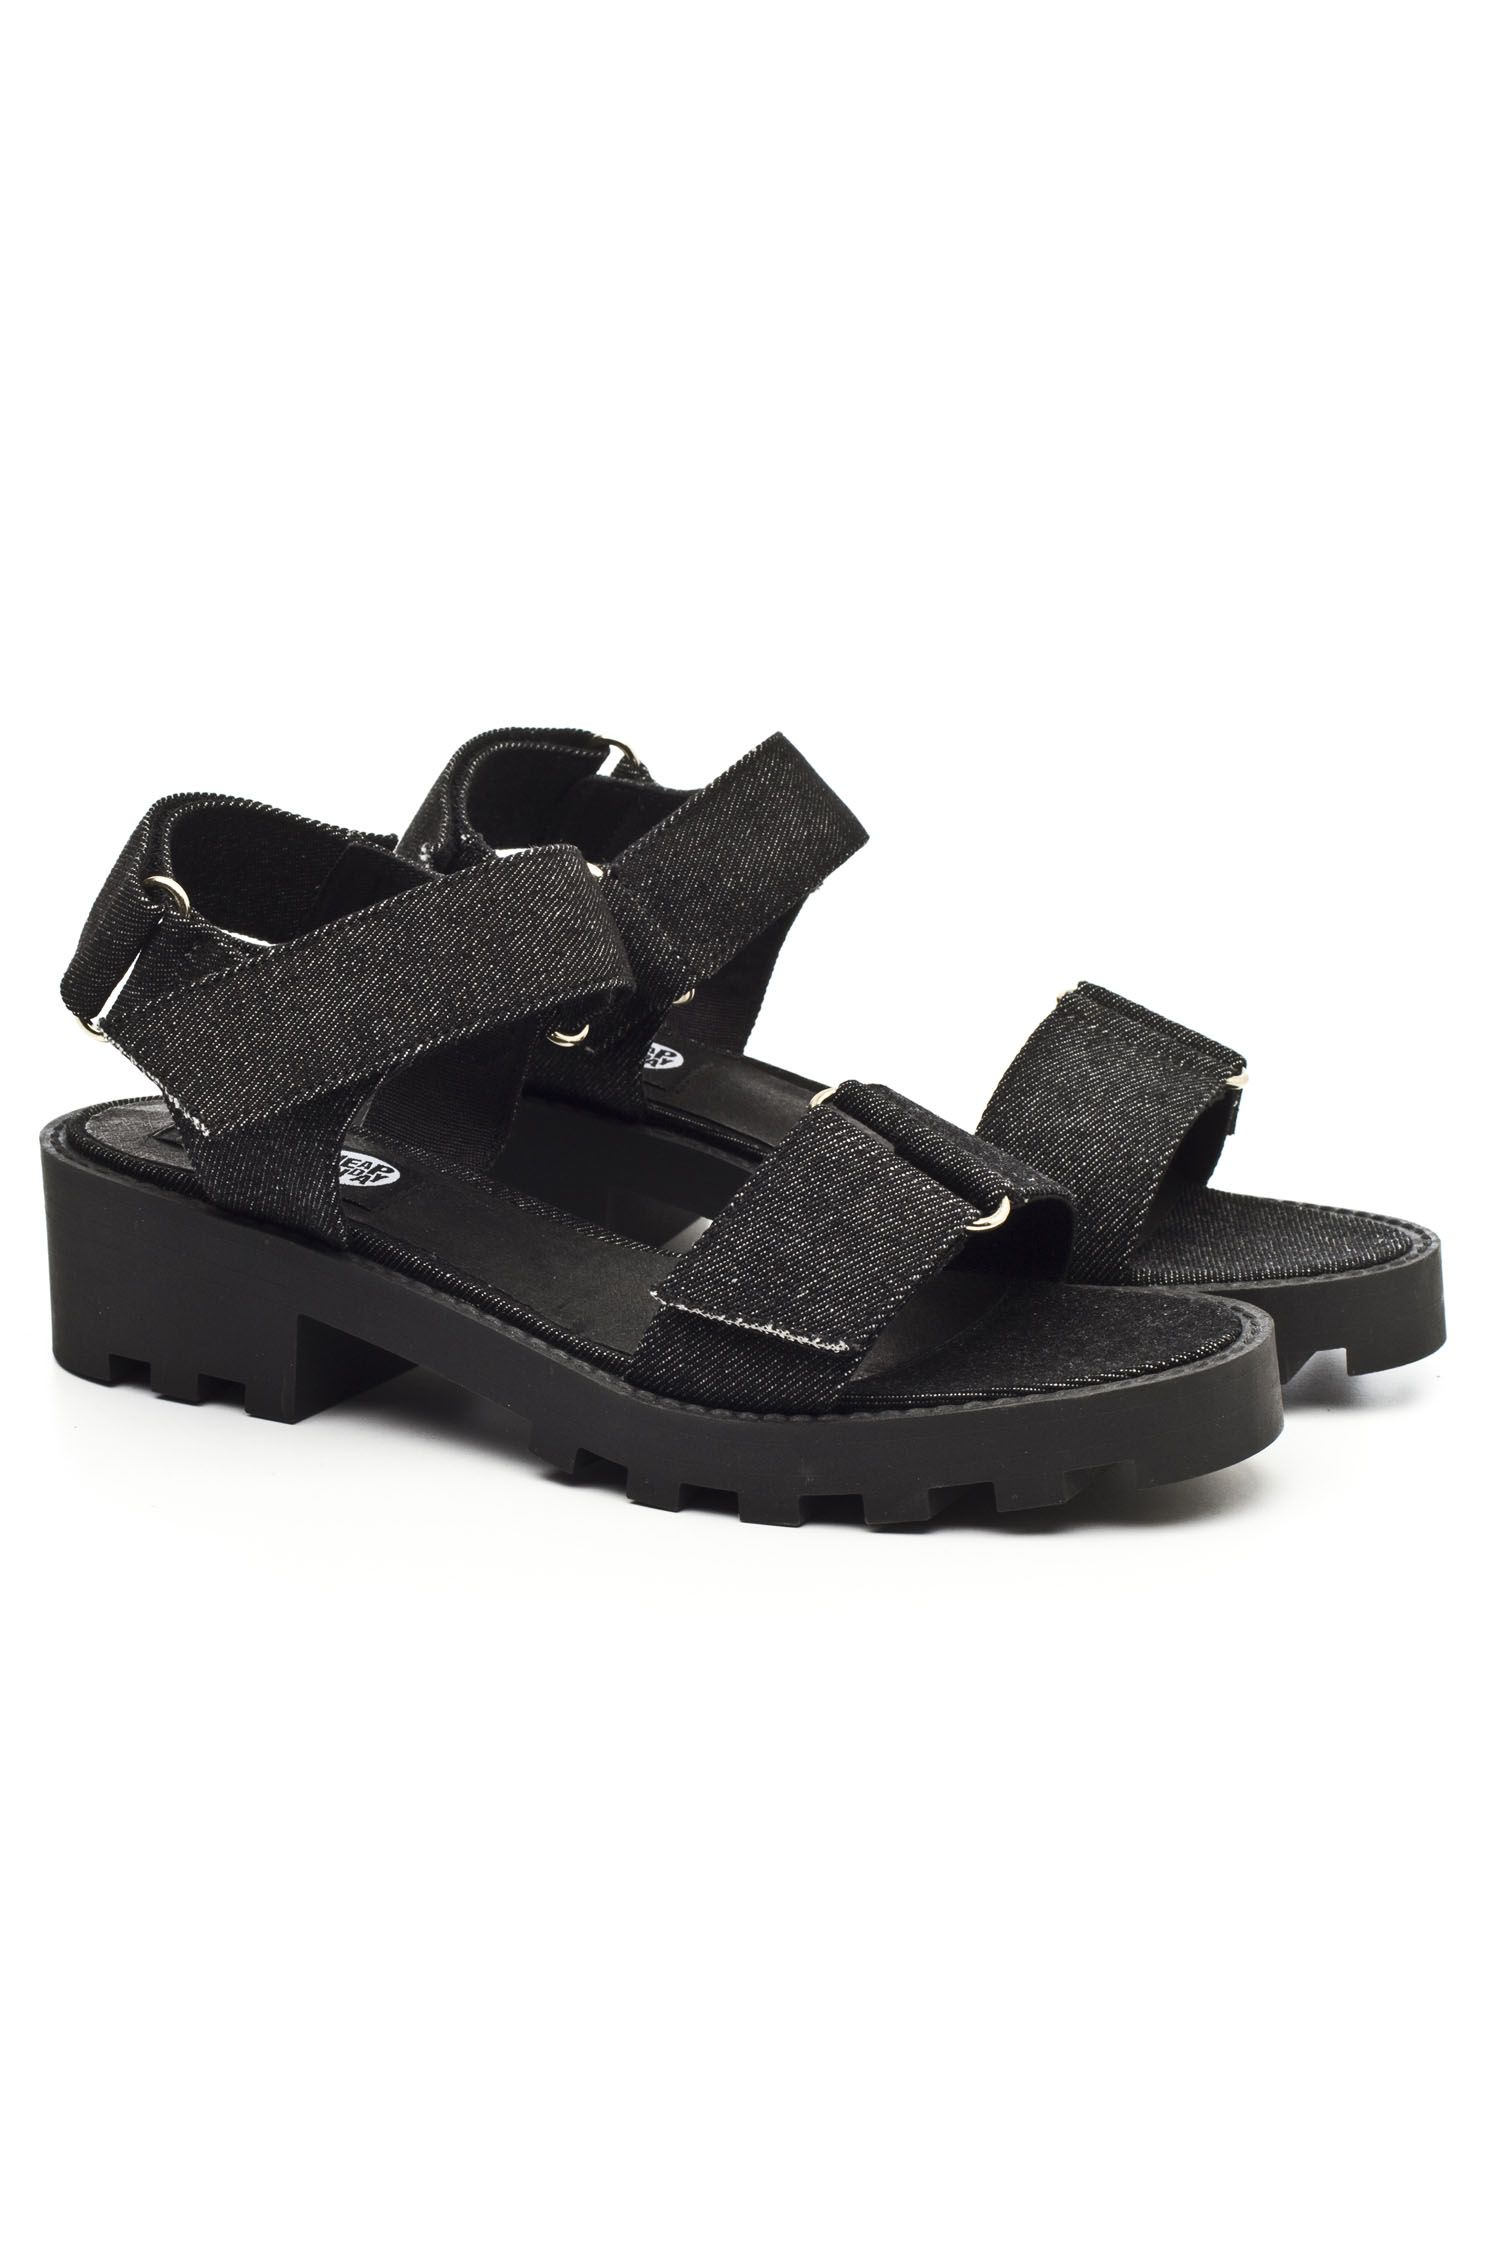 FOOTWEAR - Sandals Cheap Monday o2W6iD149